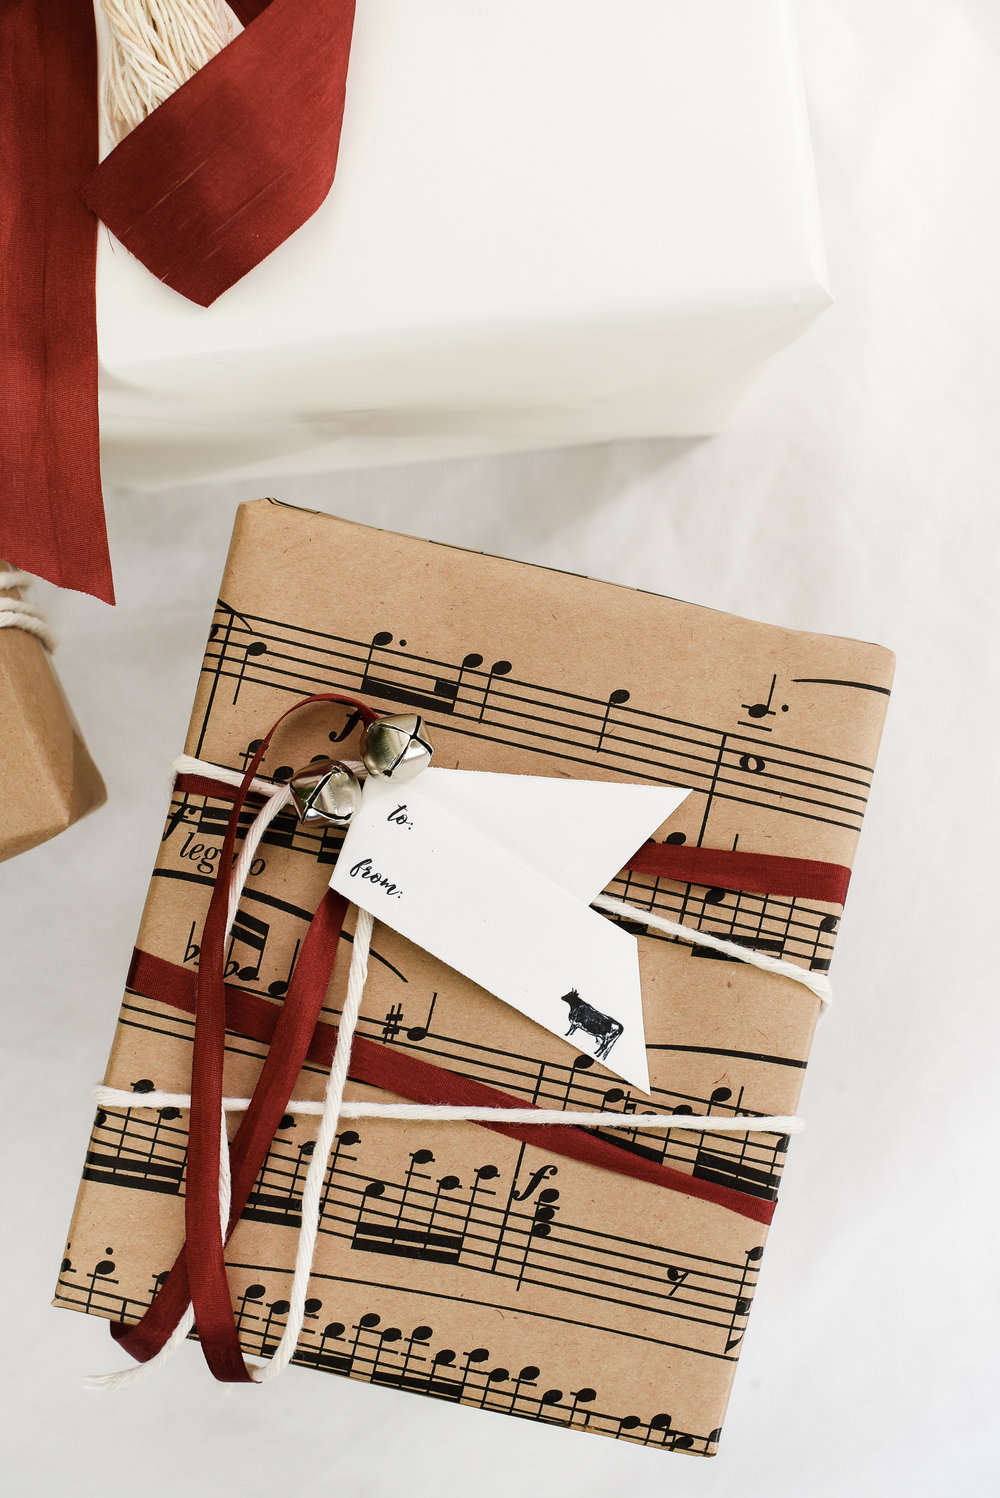 Free printable gift tags for Christmas wrapping | boxwoodavenue.com #christmasgiftwrap #christmaswrappingideas